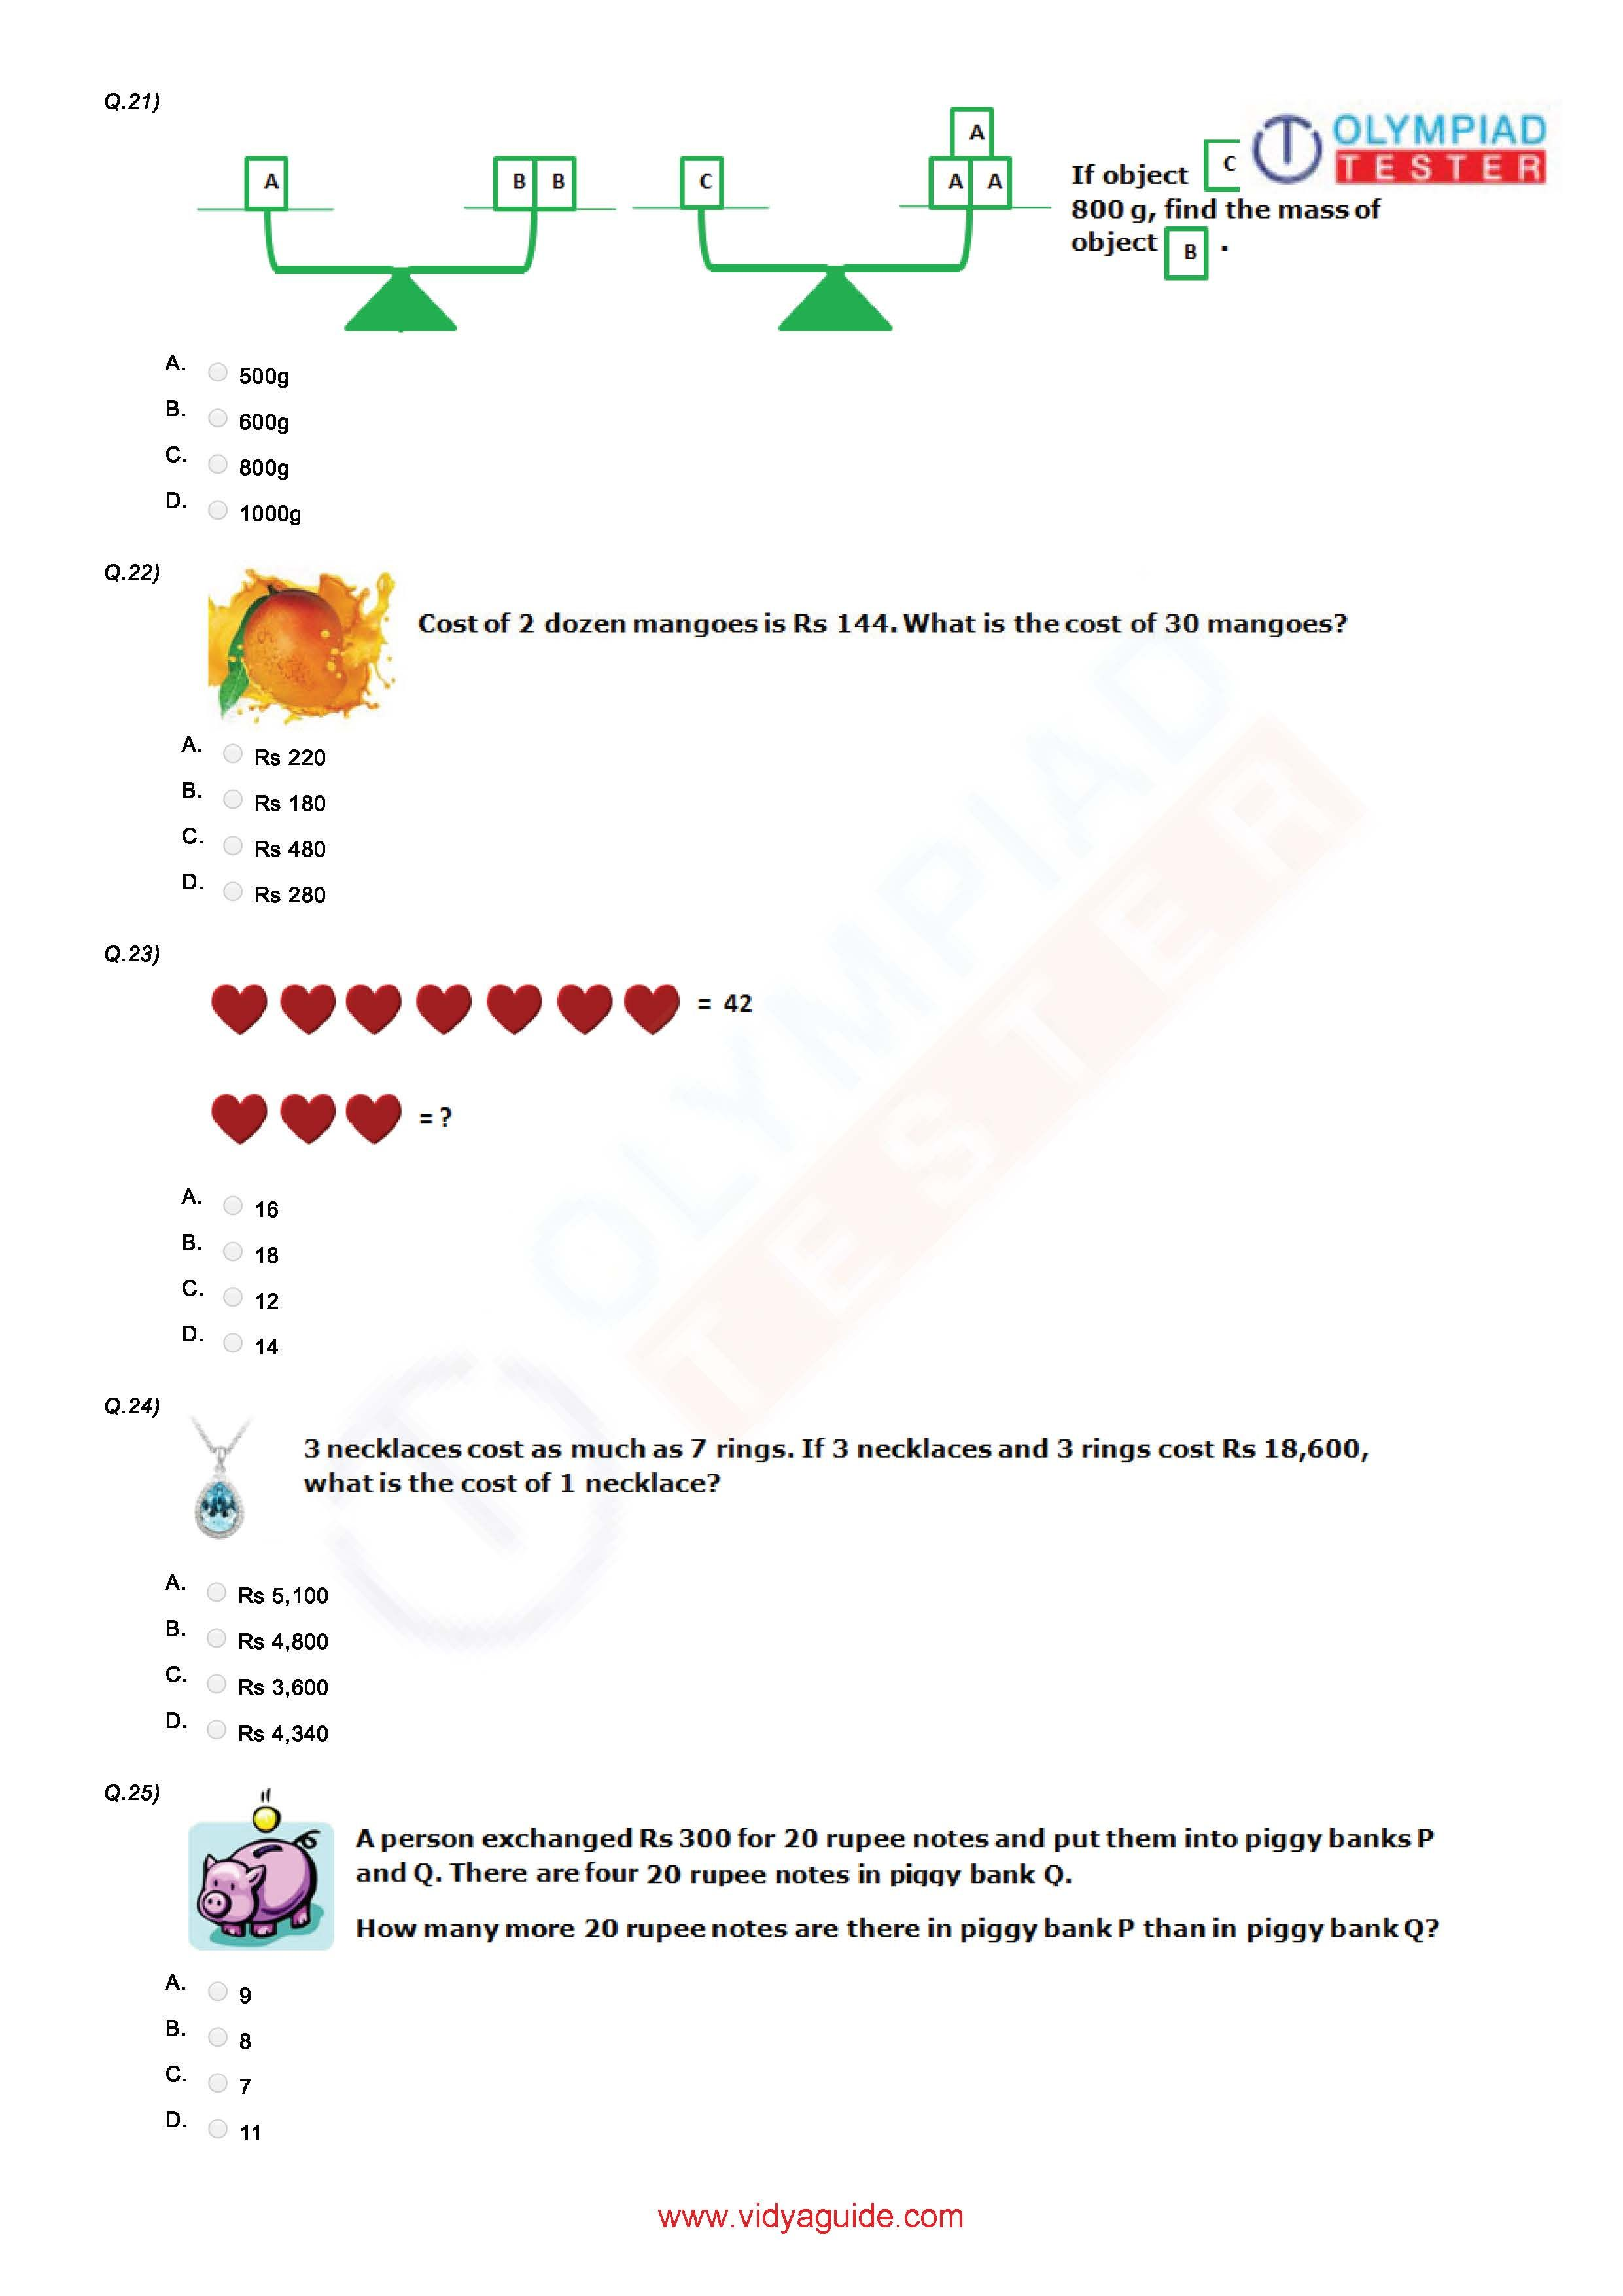 Class 4 Maths Olympiad Worksheet 03 Math Olympiad 4th Grade Math Worksheets Maths Paper